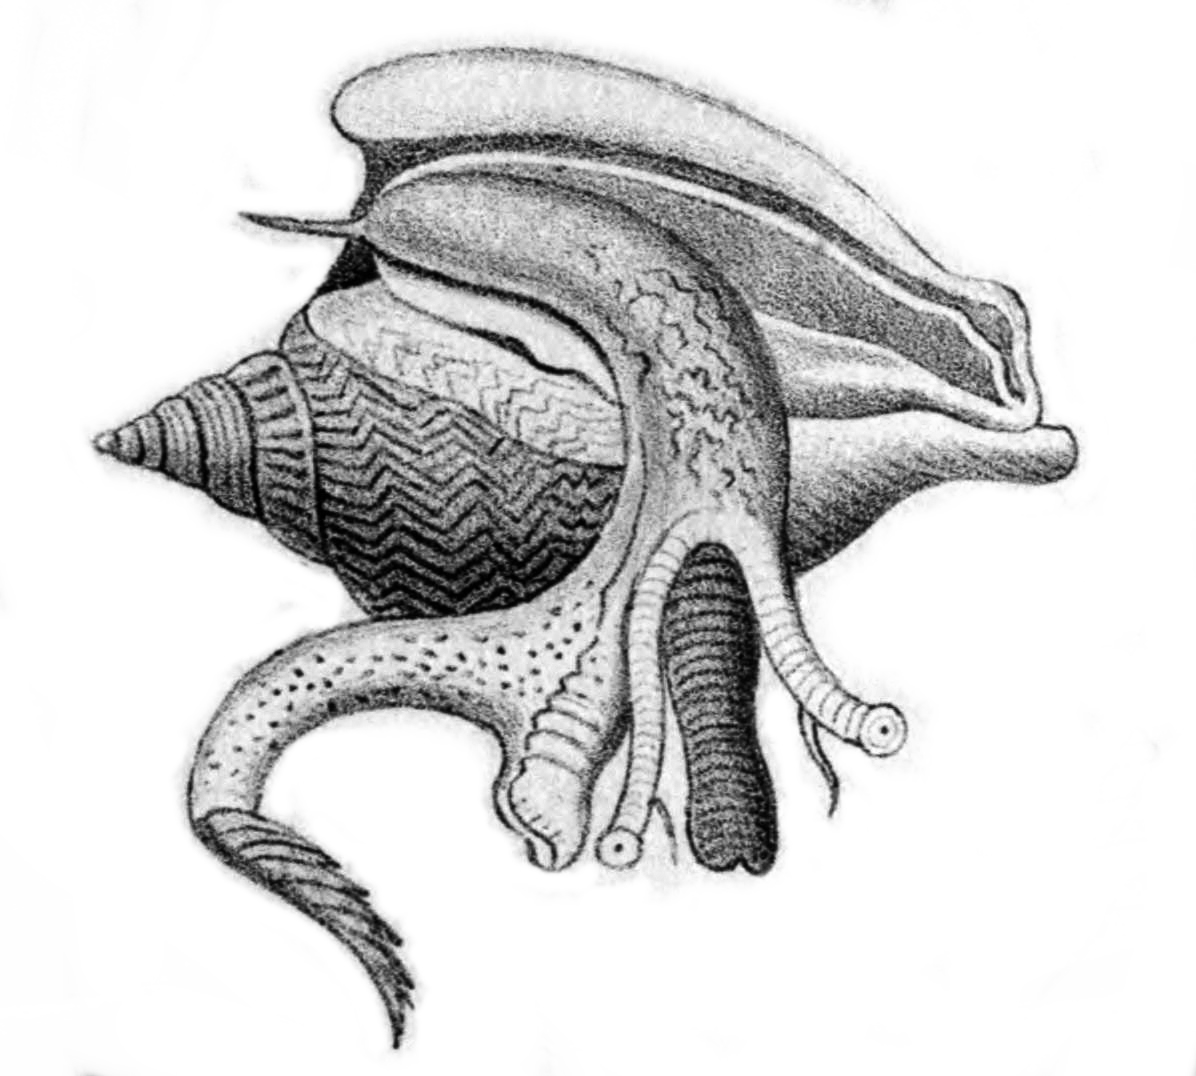 Filestrombus Canarium Anatomy Tryong Wikimedia Commons